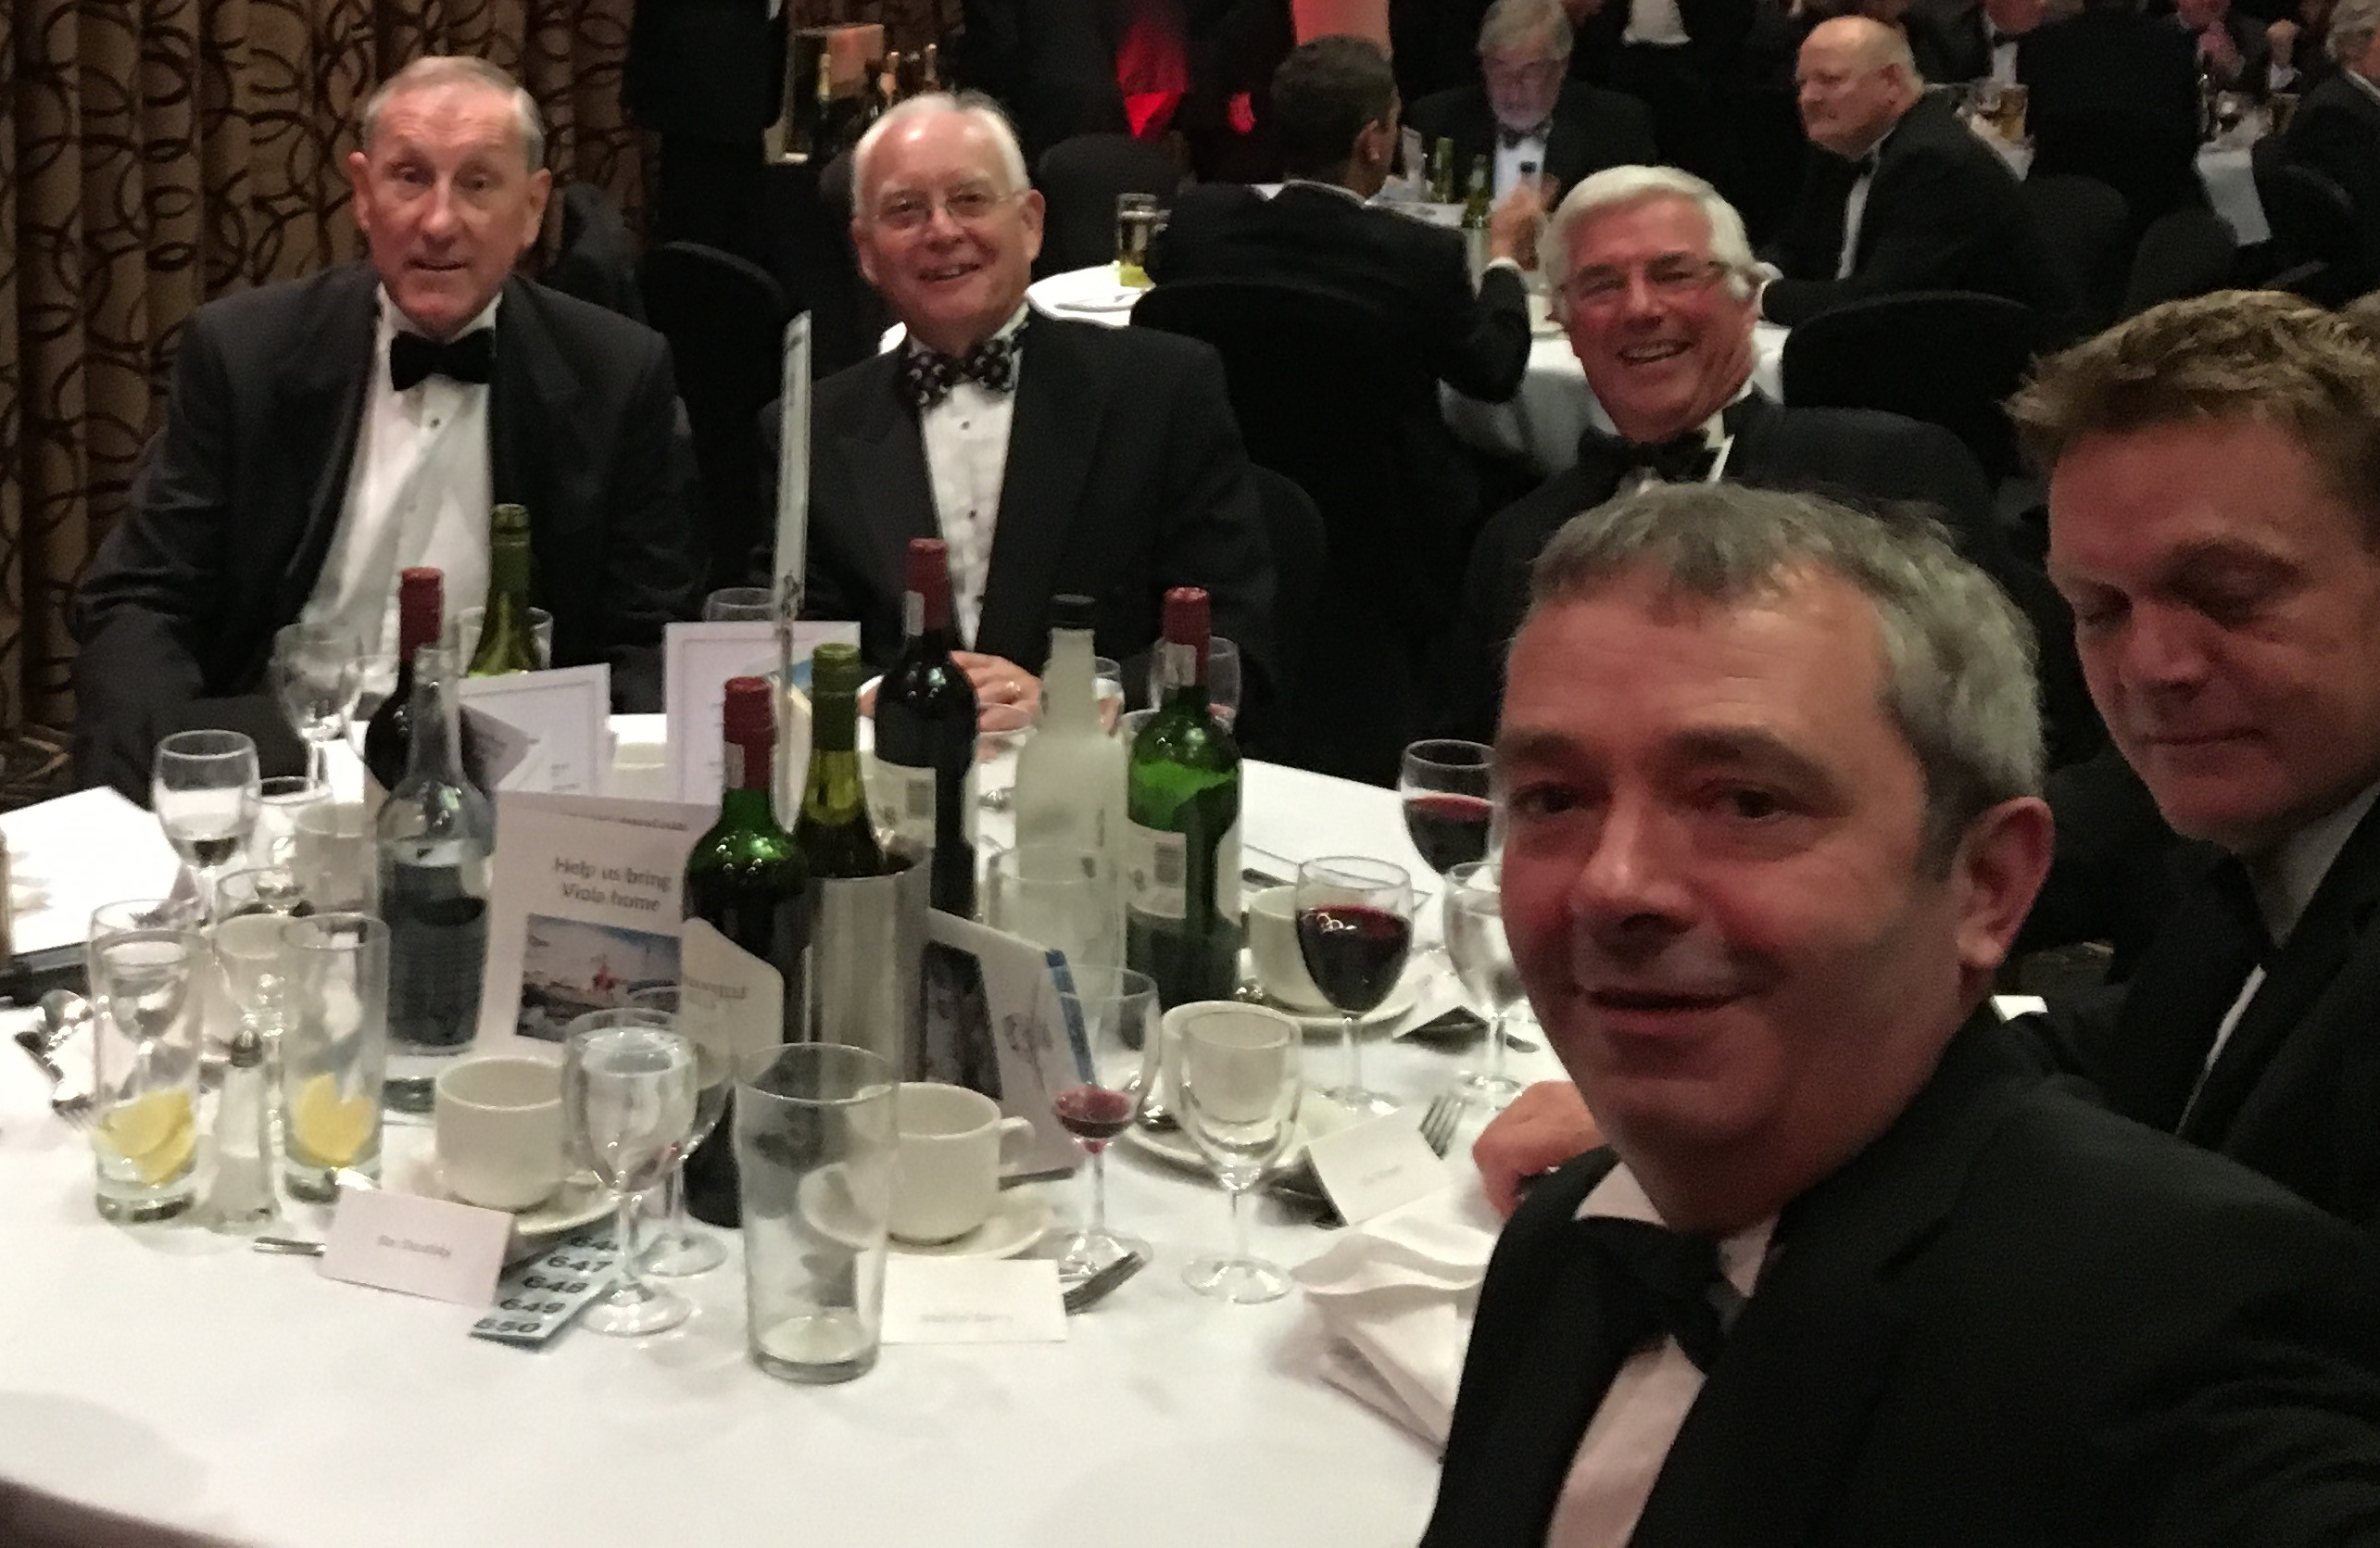 SMS Towage host 2018 Grimsby and Immingham Shipping Association Dinner in support of the Viola Charitable Trust